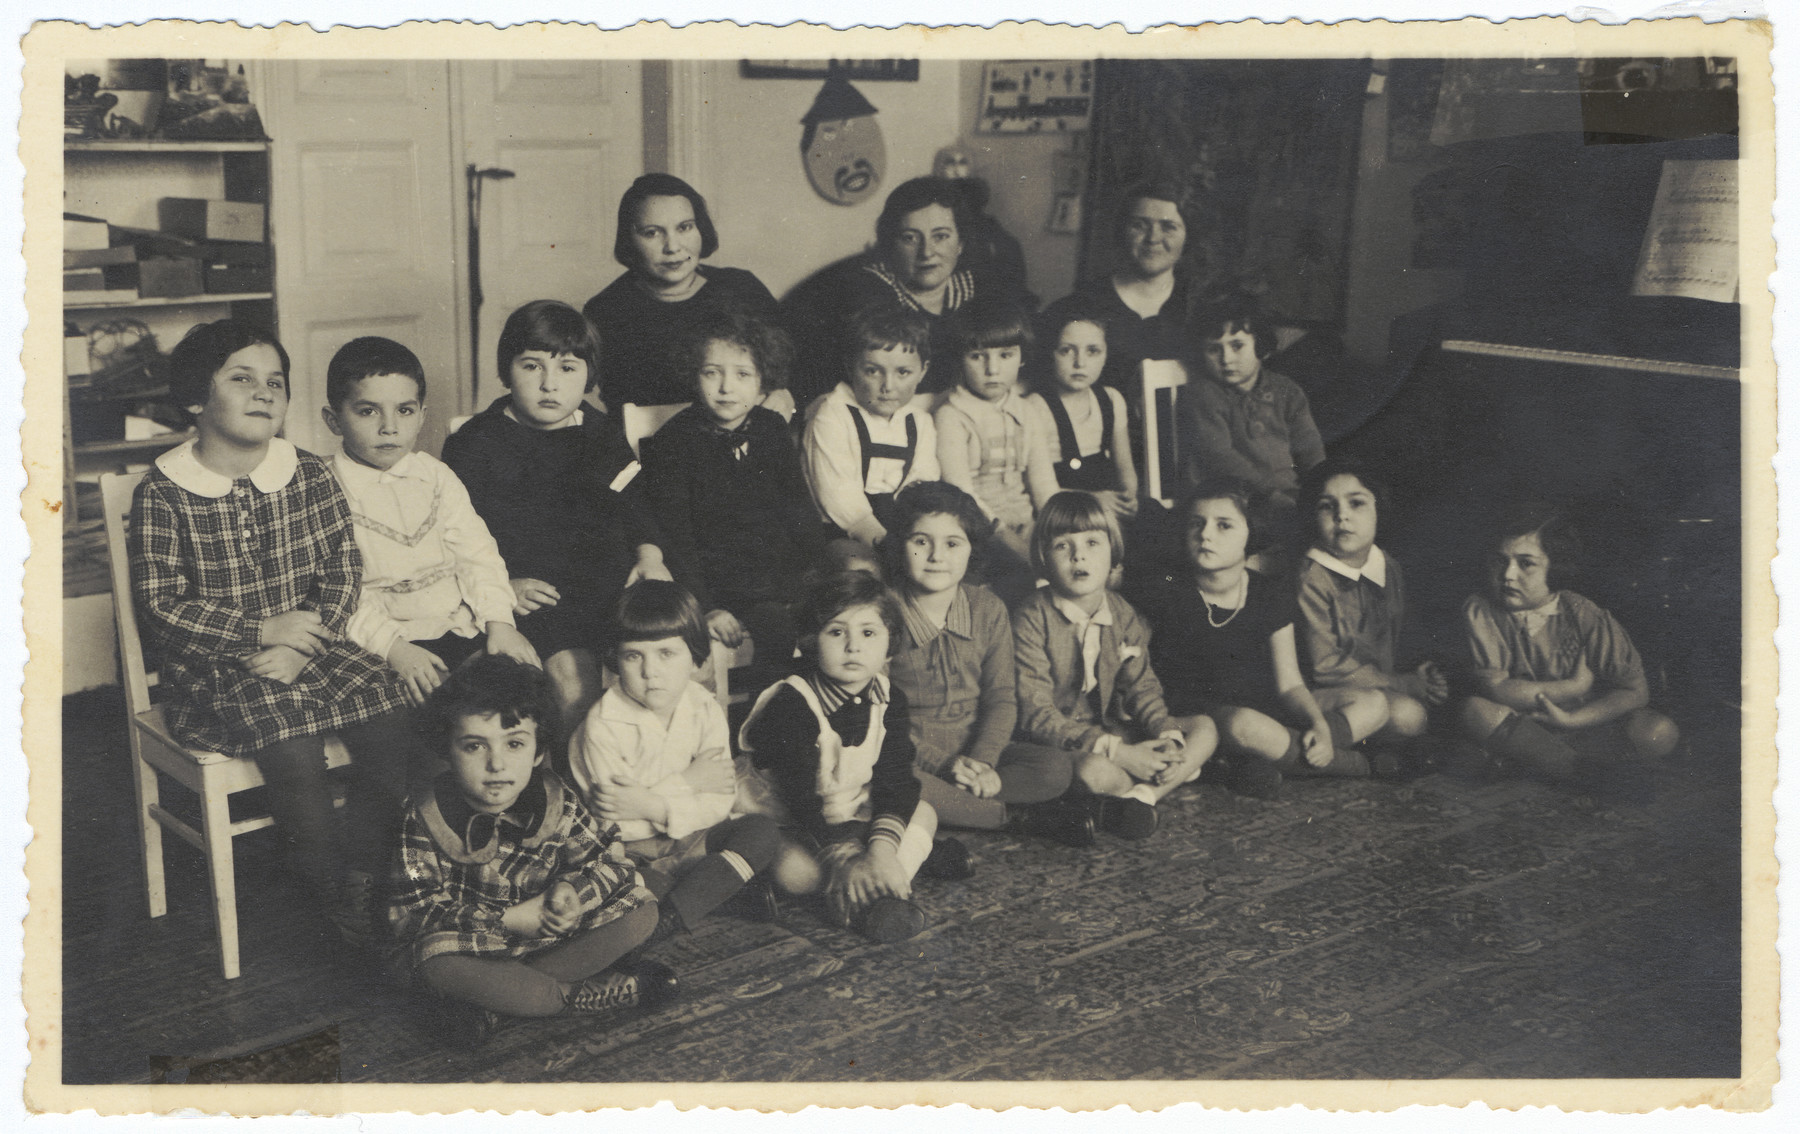 Class photograph of a kindergarten/nursery school in Kaunas.  Among those pictured are Rina Ilgovsky (front corner), Golda Rudashevsky (second row, second from the right) and the teacher, Anna Warshavsky.